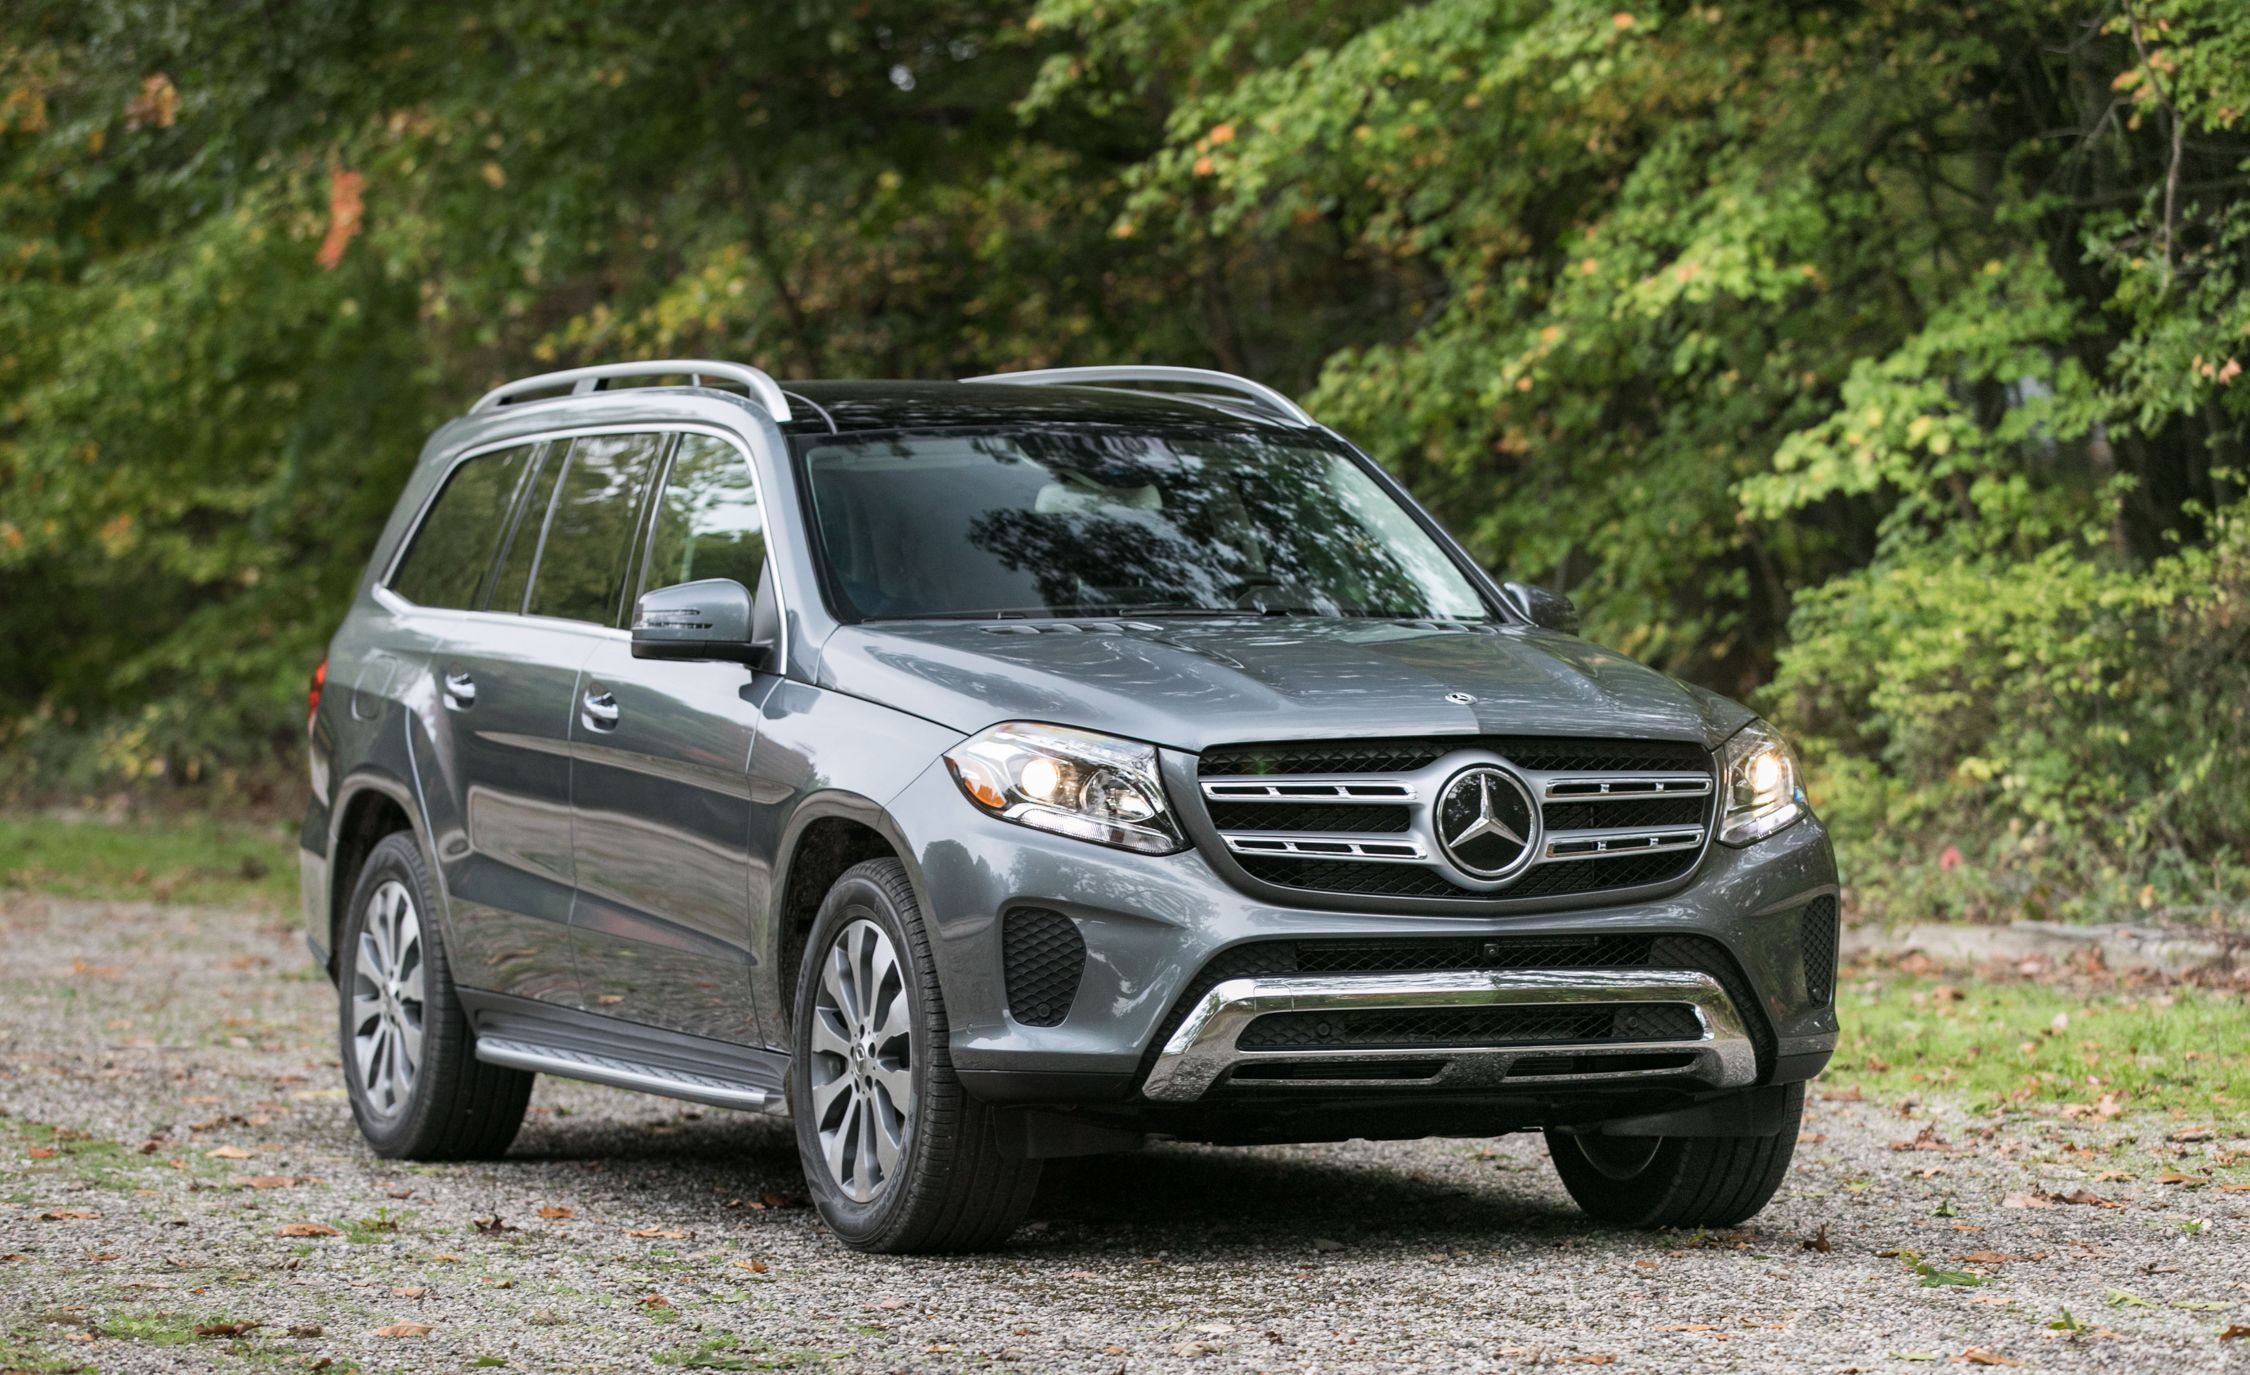 Used Gmc Terrain >> 2018 Mercedes-Benz GLS-class | Exterior Review | Car and Driver